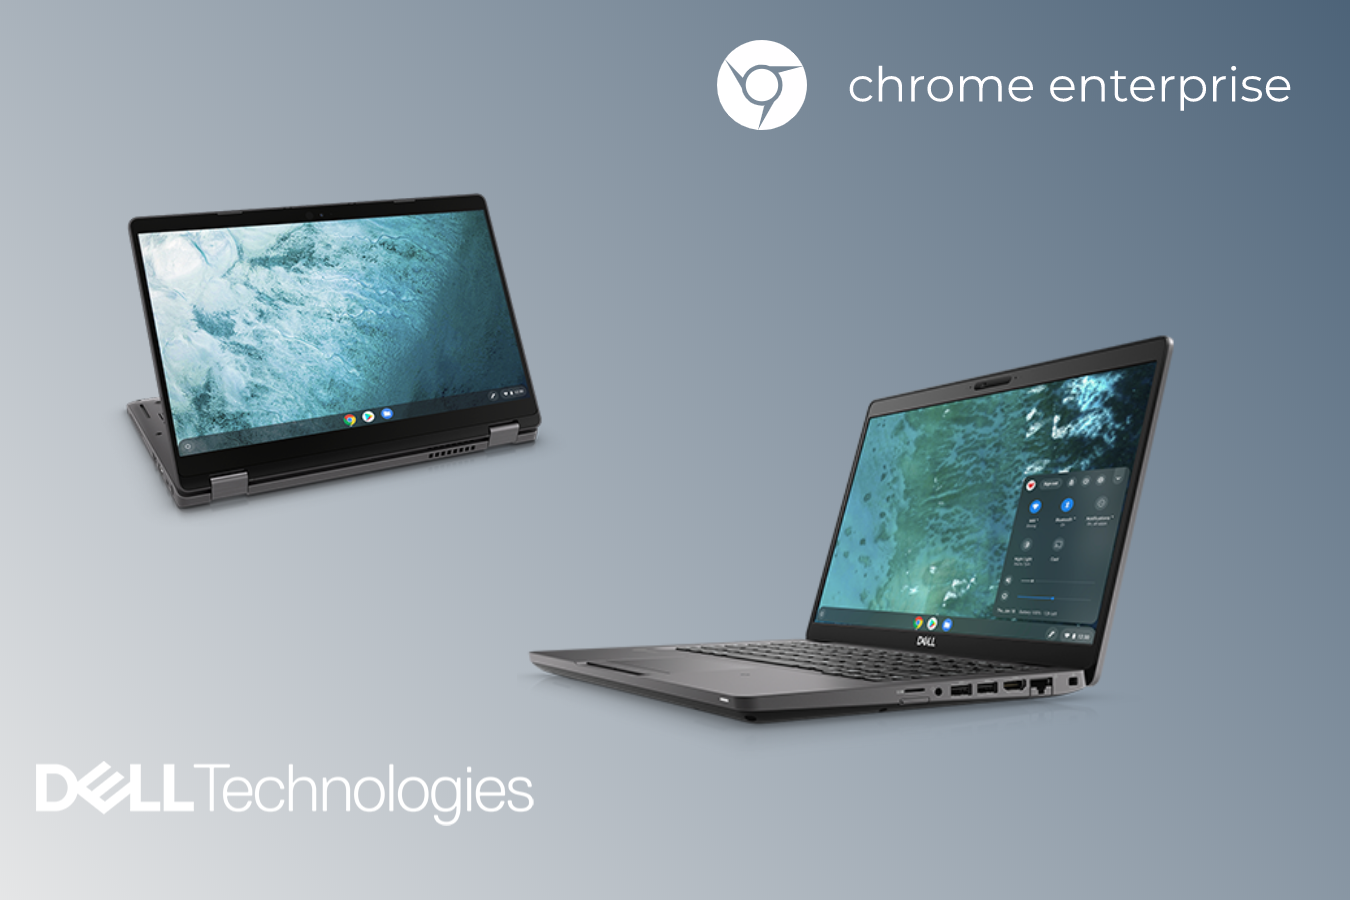 Dell and Google Cloud announce Chromebooks for Enterprise with industry-first 32GB RAM and up to 1TB NVMe